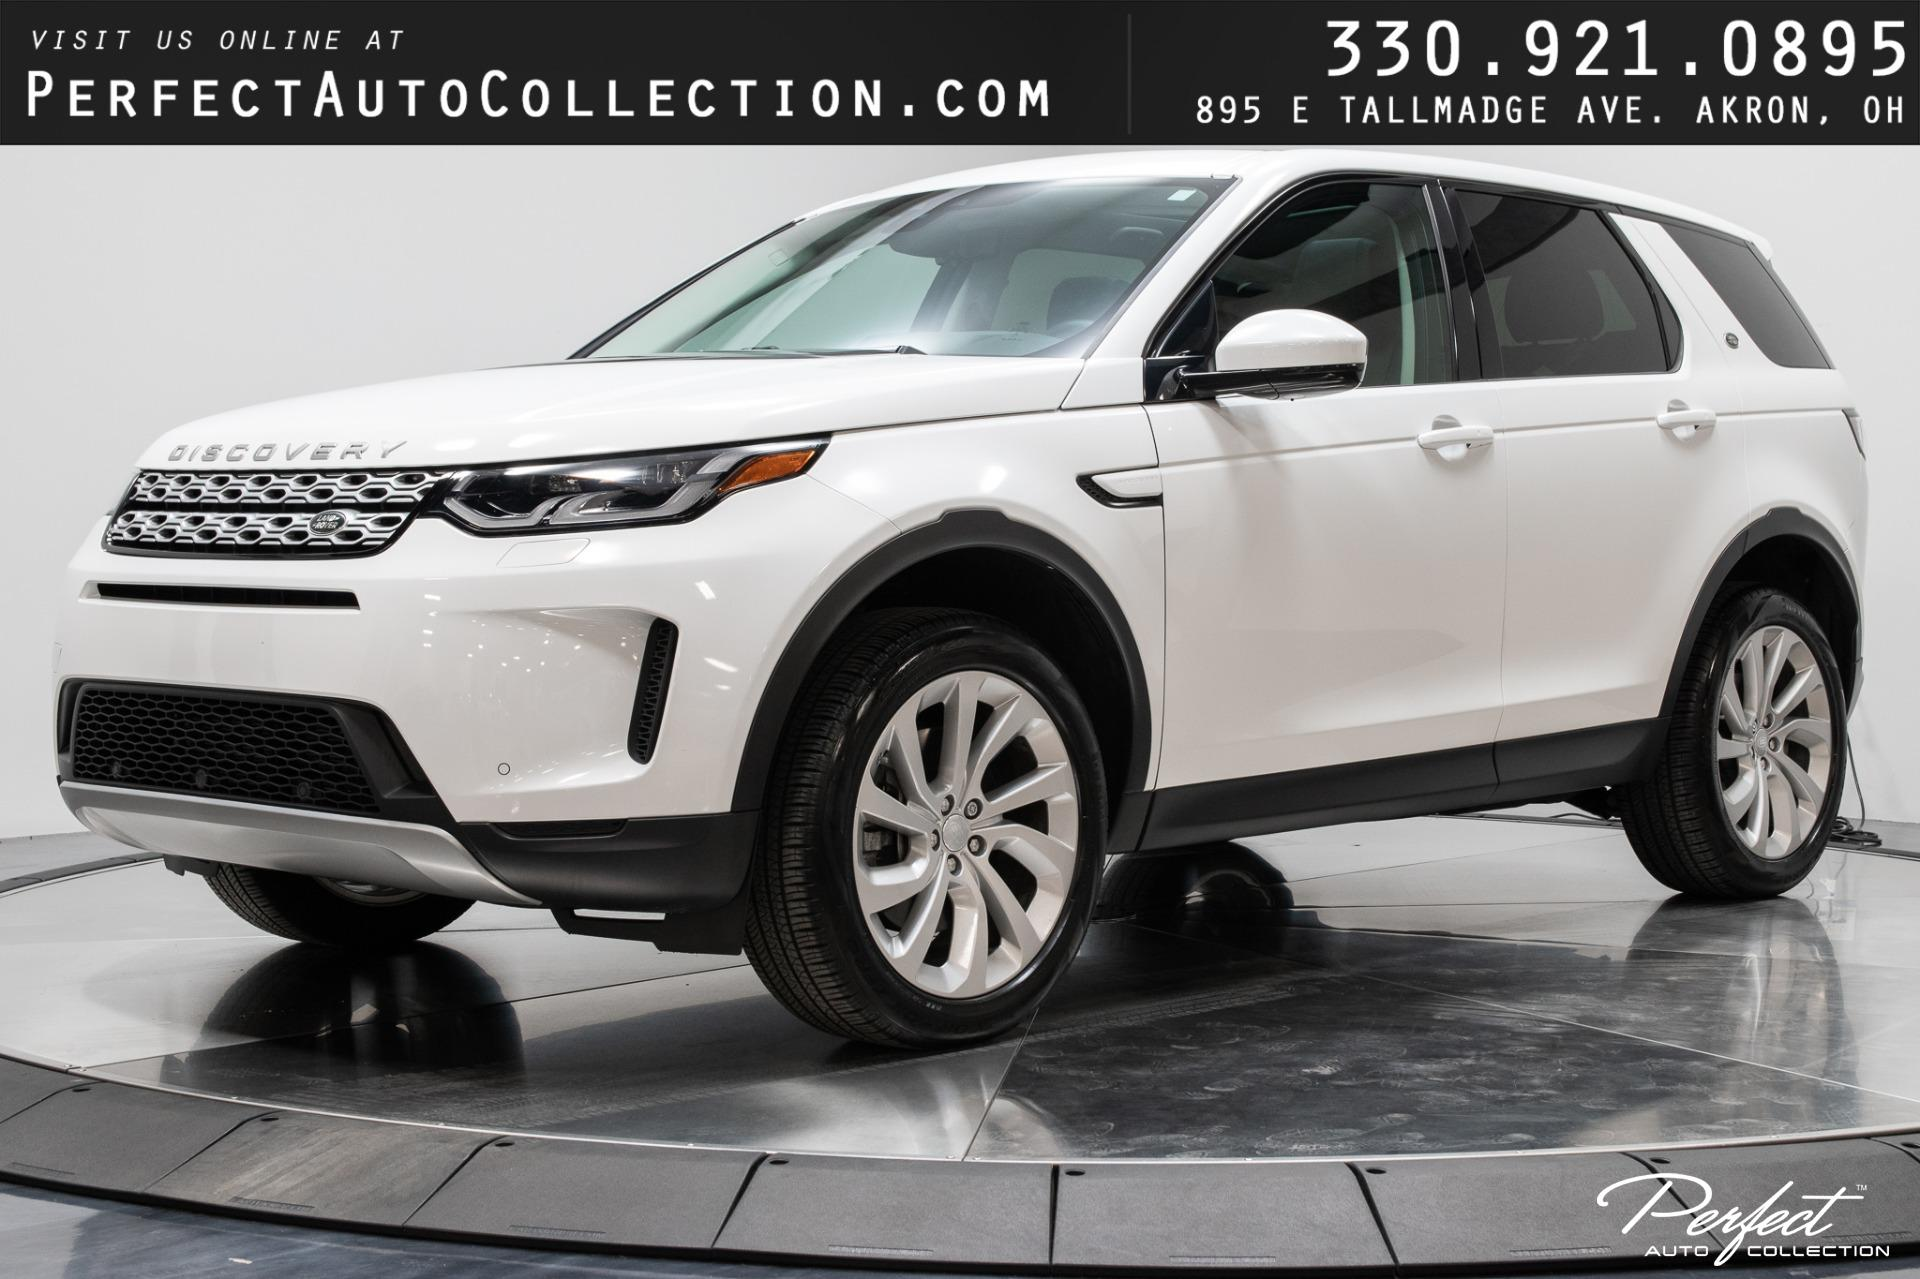 Used 2020 Land Rover Discovery Sport P250 S for sale $40,993 at Perfect Auto Collection in Akron OH 44310 1